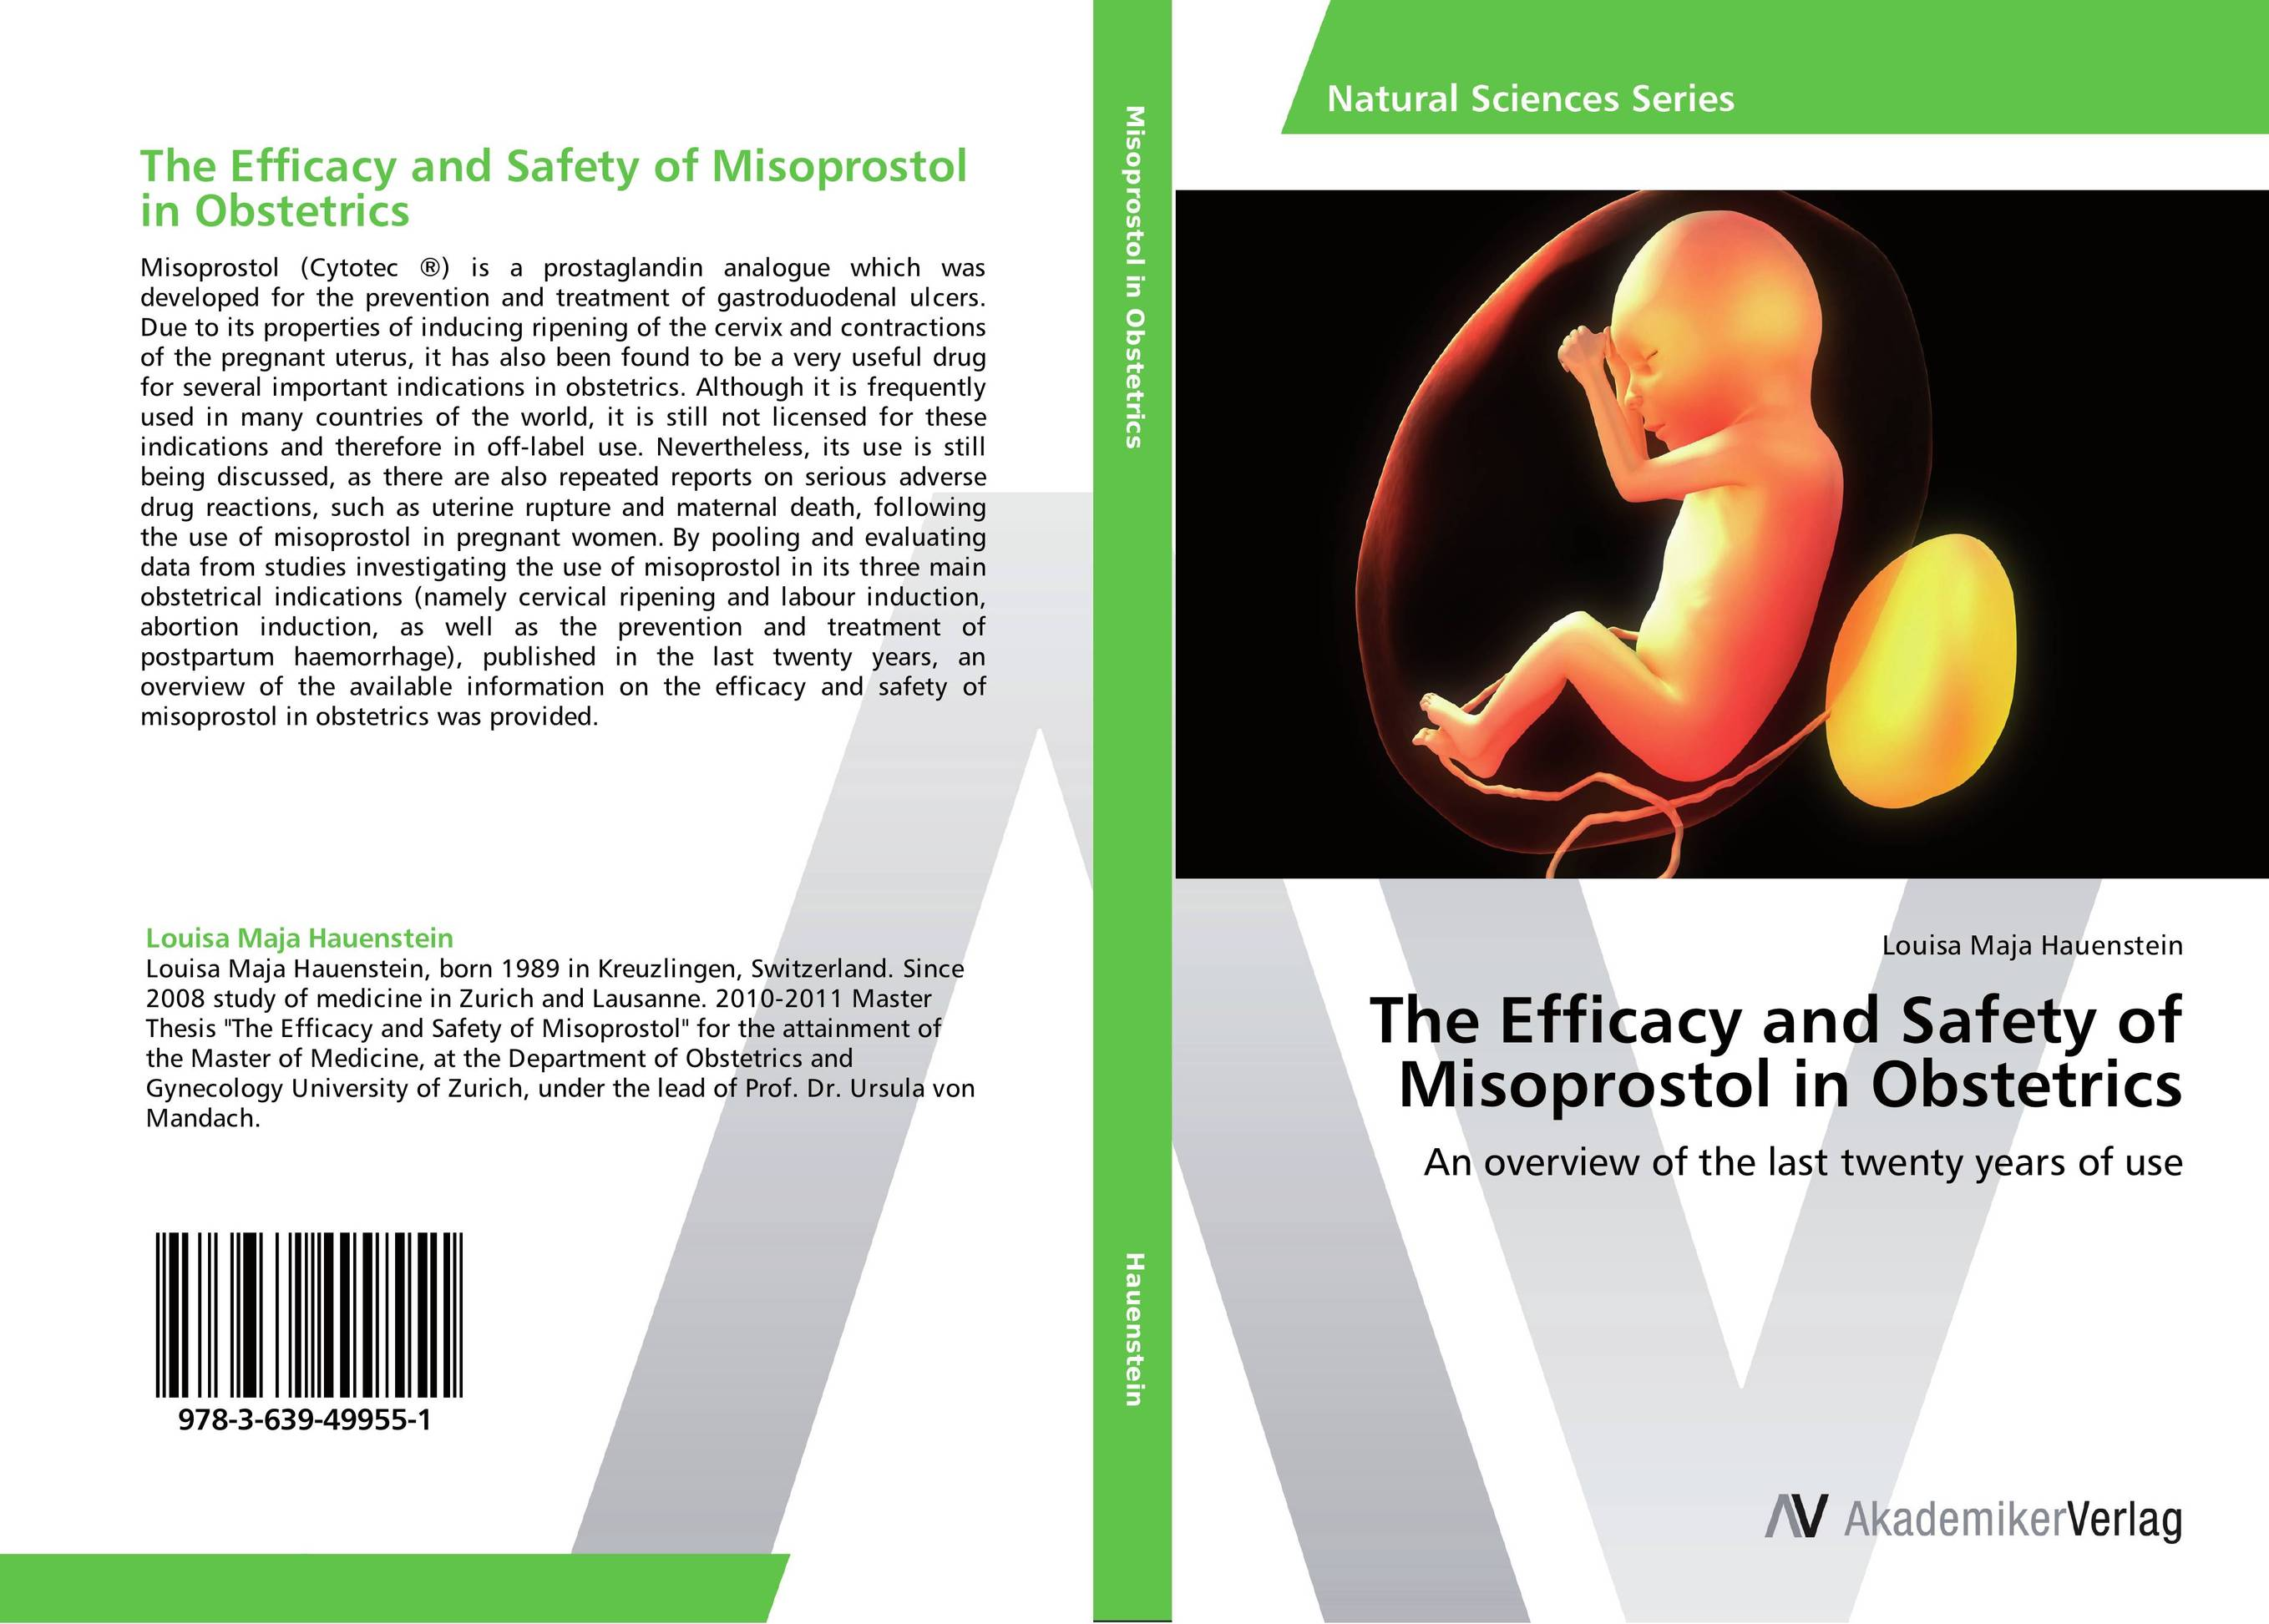 The Efficacy and Safety of Misoprostol in Obstetrics efficacy of uterotonic agents in prevention of pph